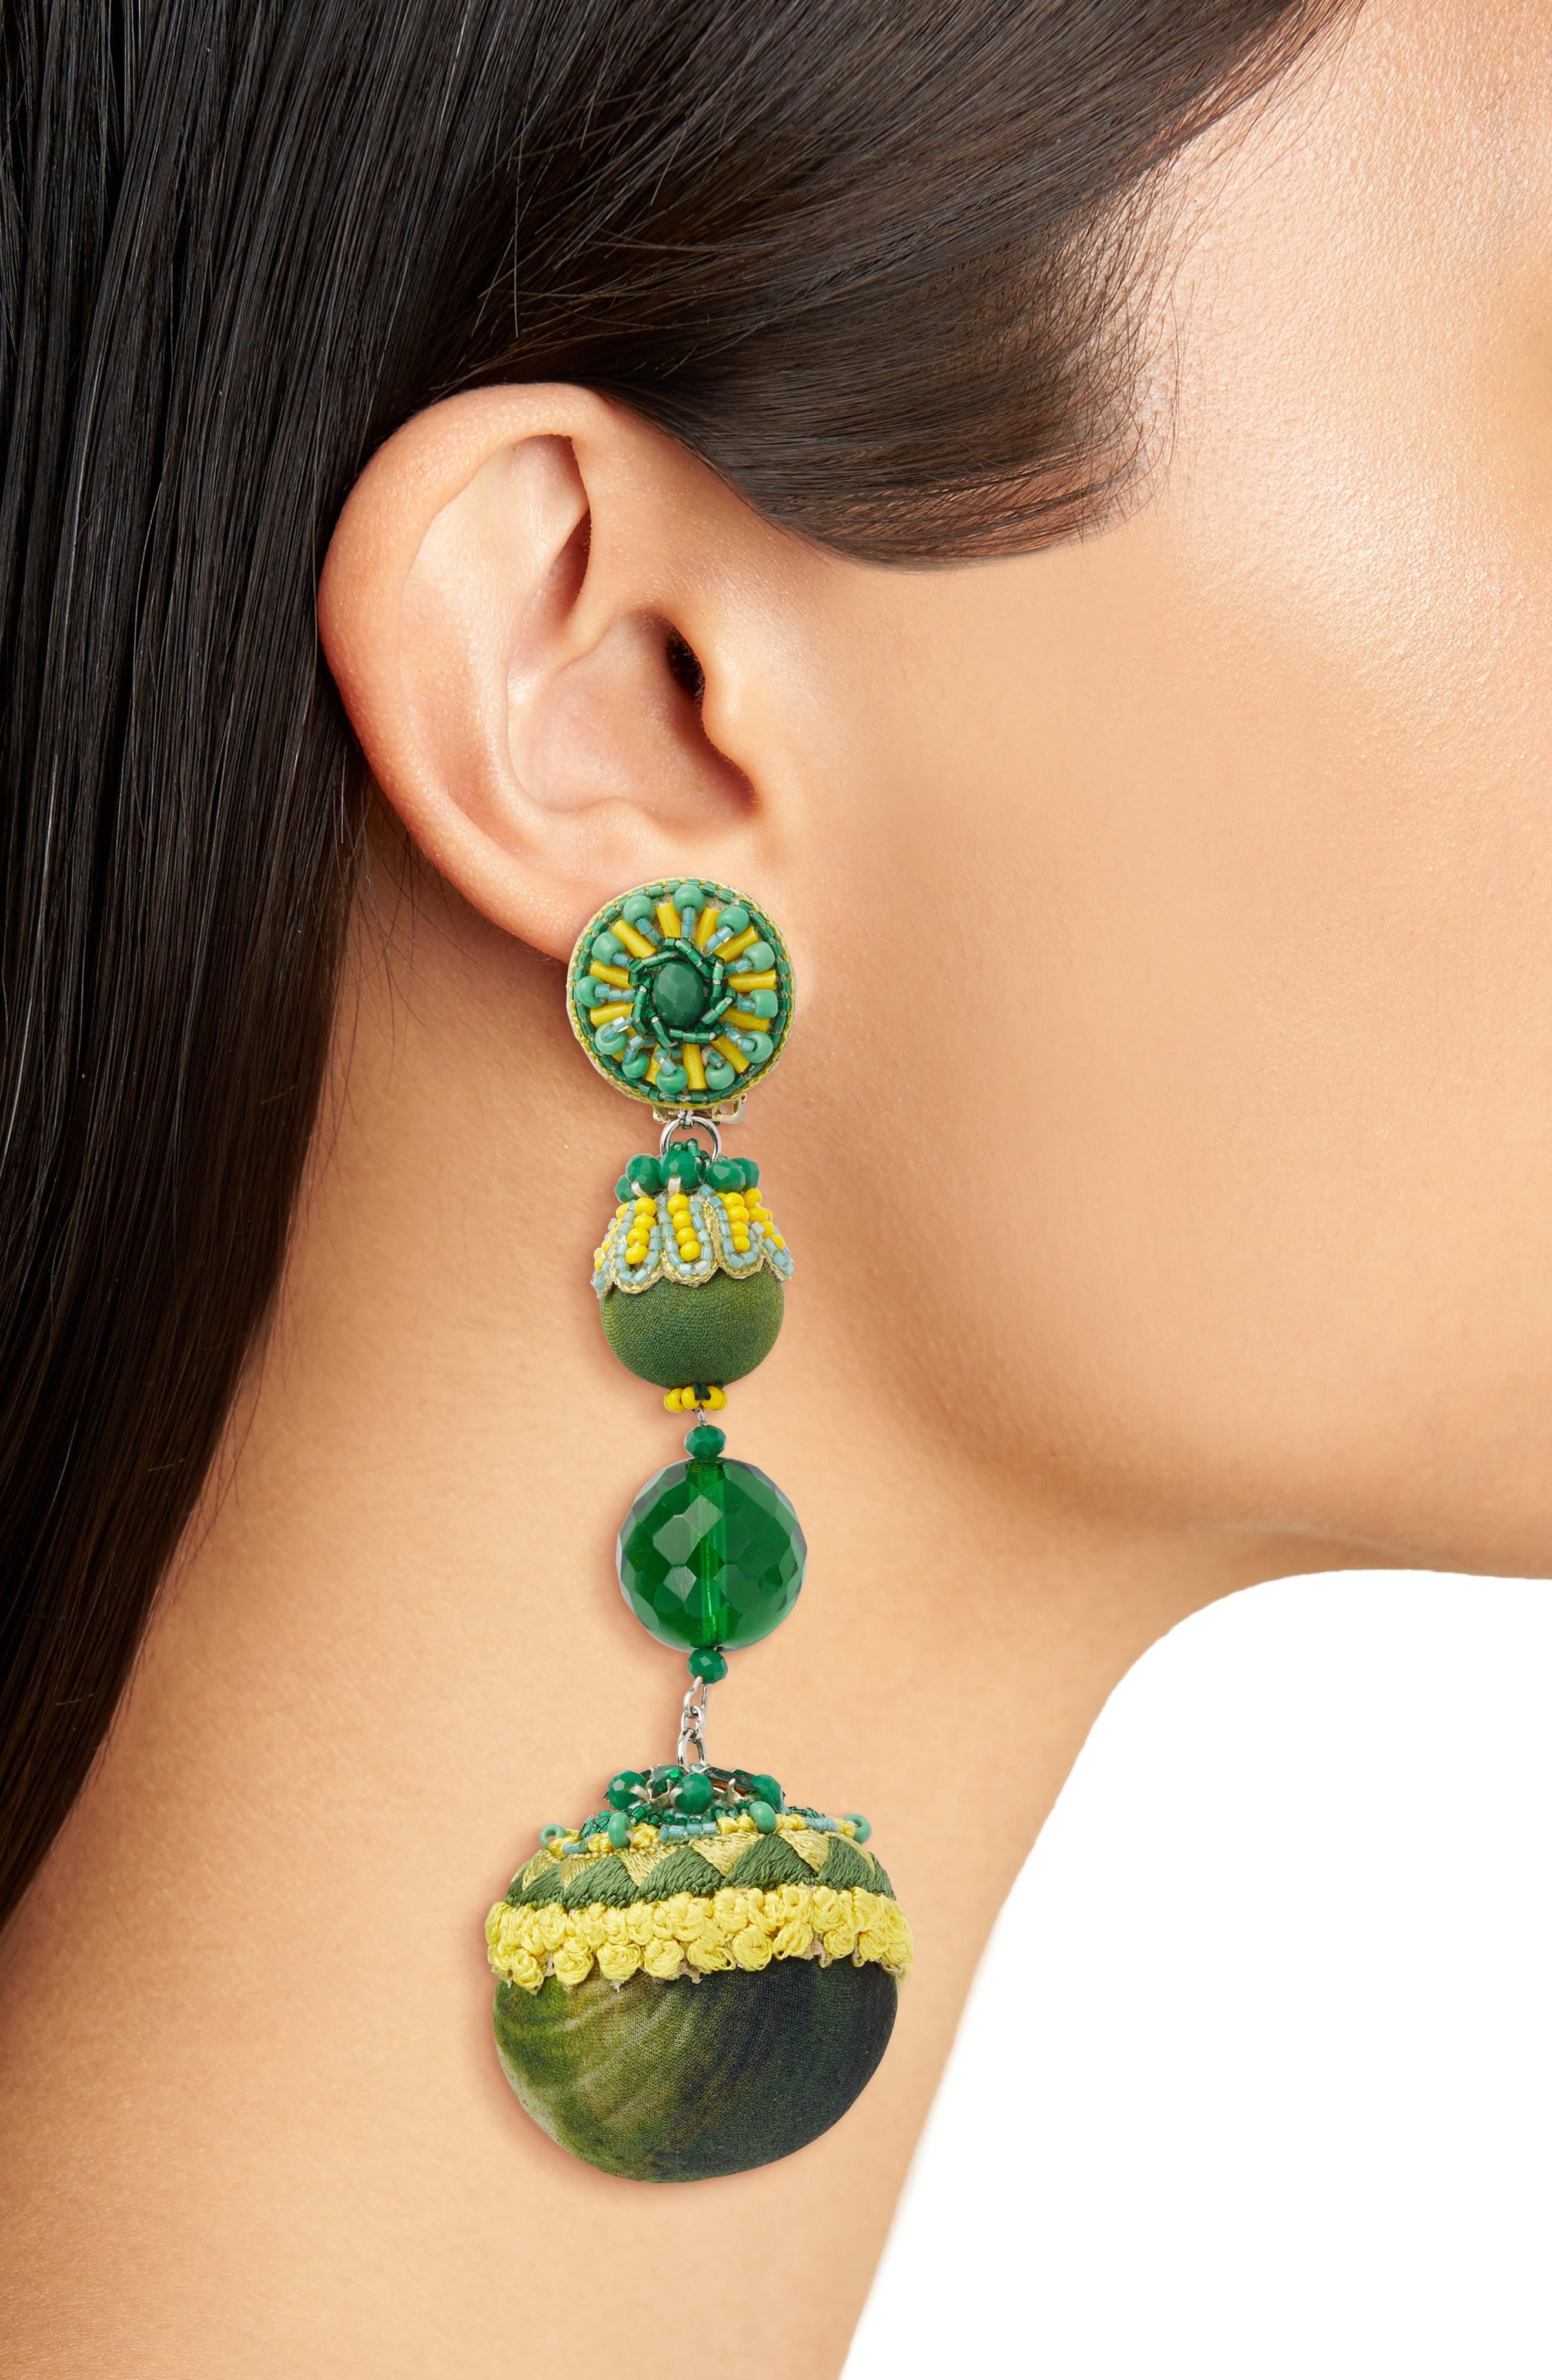 Lily Linear Earrings,                             Alternate thumbnail 2, color,                             Green / Yellow